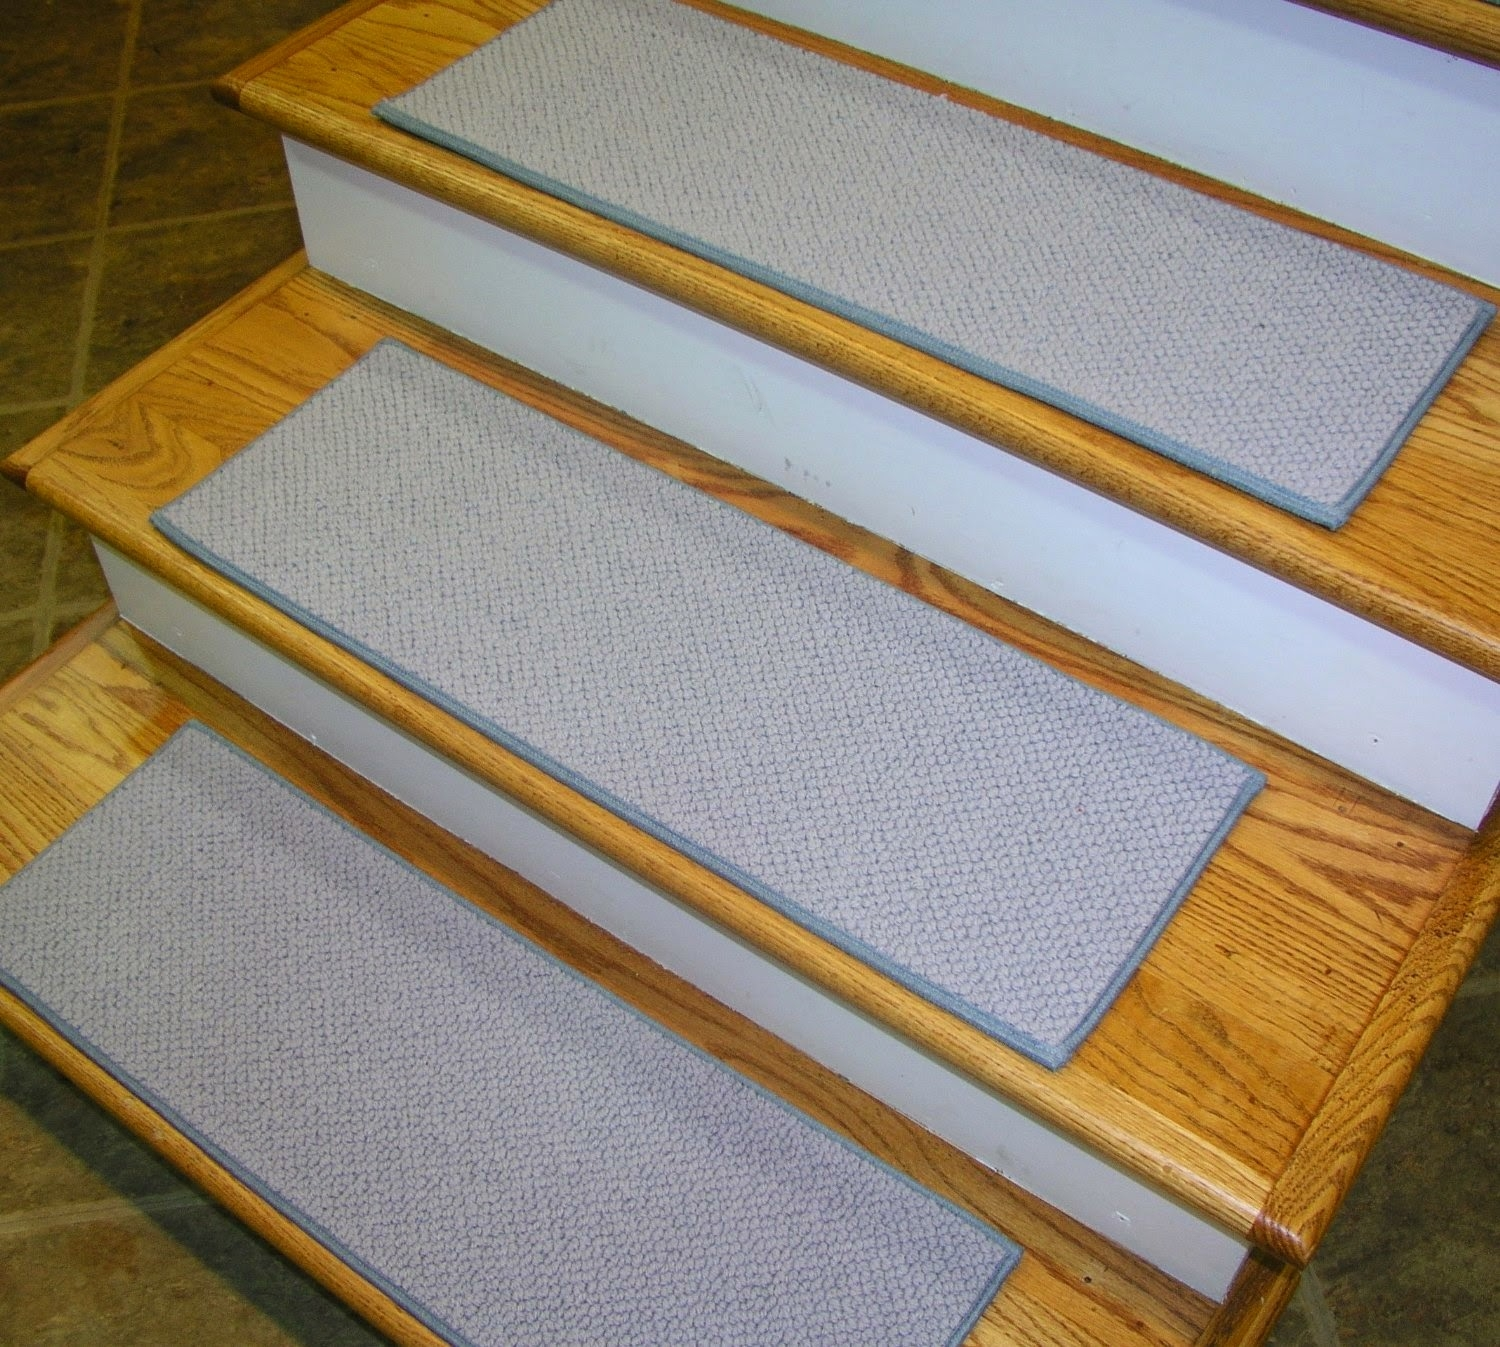 Flooring Pretty Stair Treads Carpet For Stair Decoration Idea Inside Stair Tread Carpet Tiles (#12 of 20)